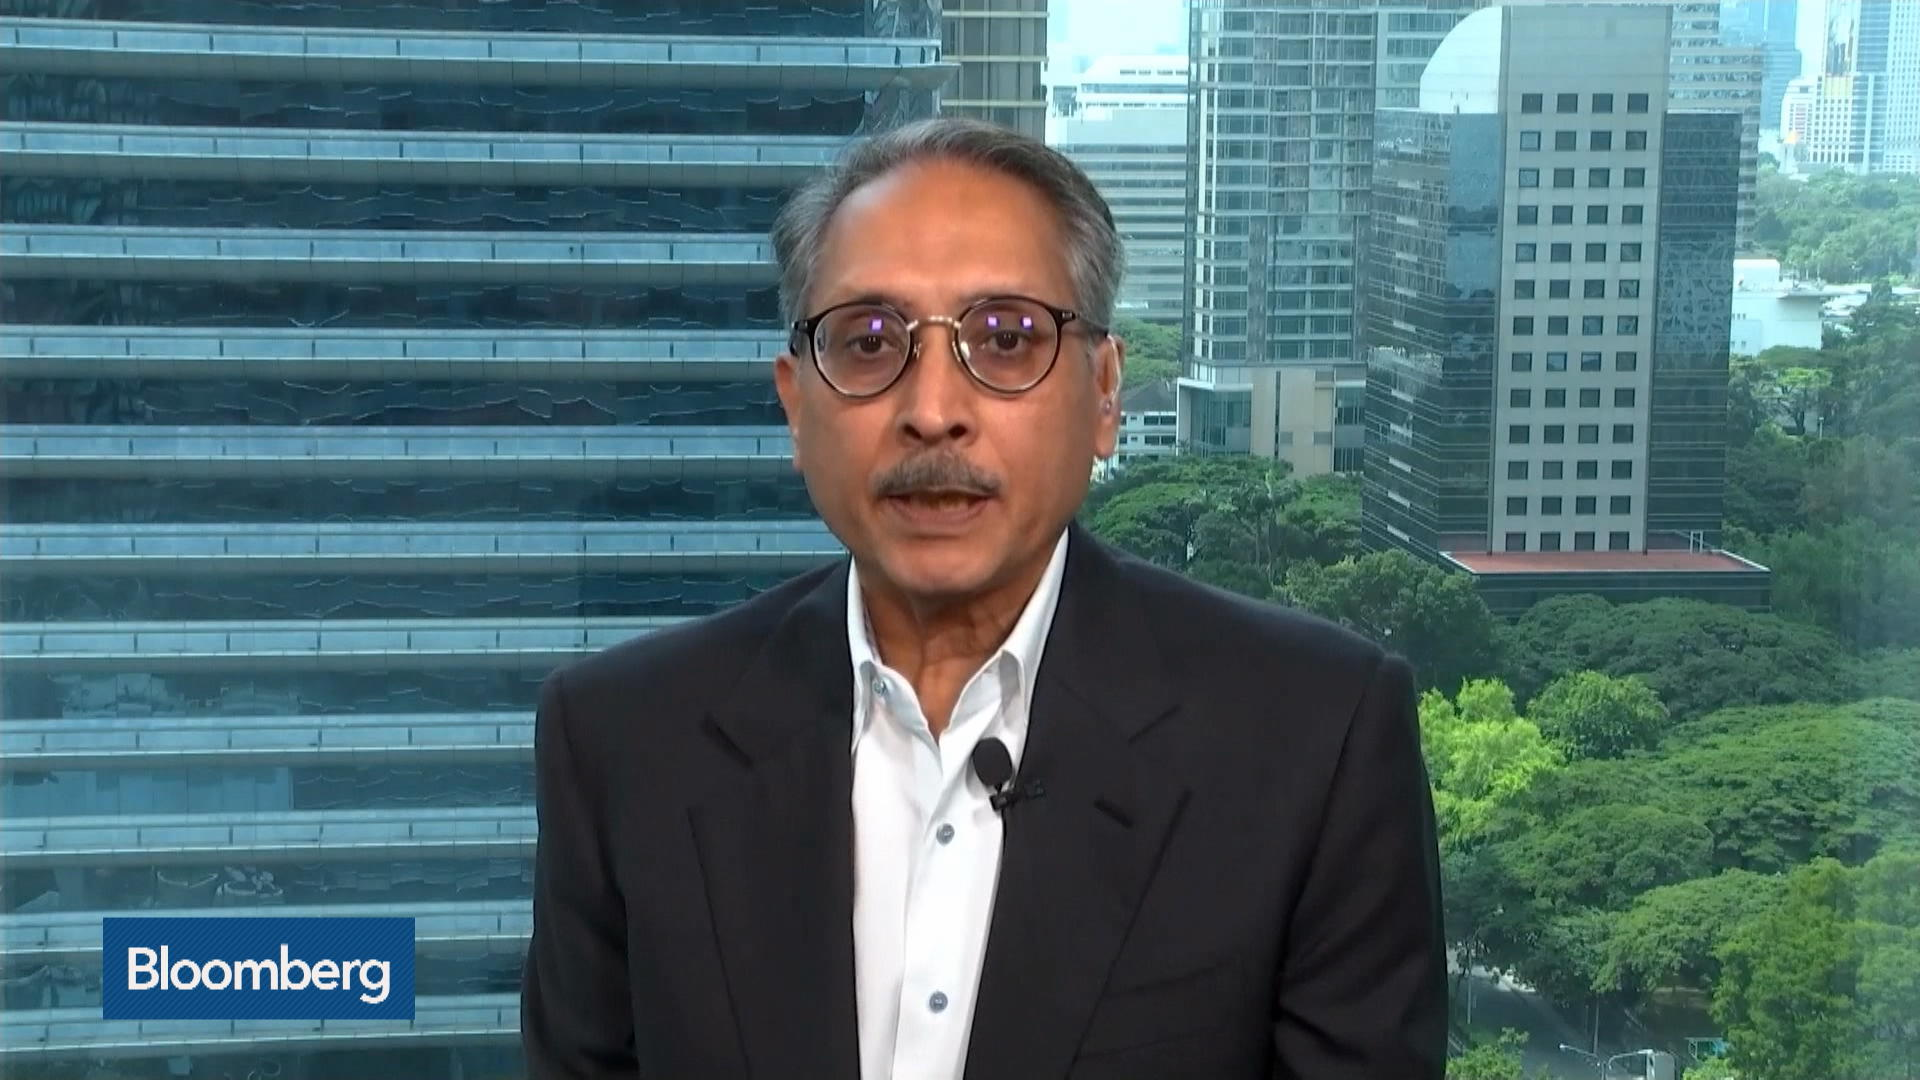 Indorama Vice Chairman and CEO Aloke Lohia on Trade War, Business Strategy, Growth Plans